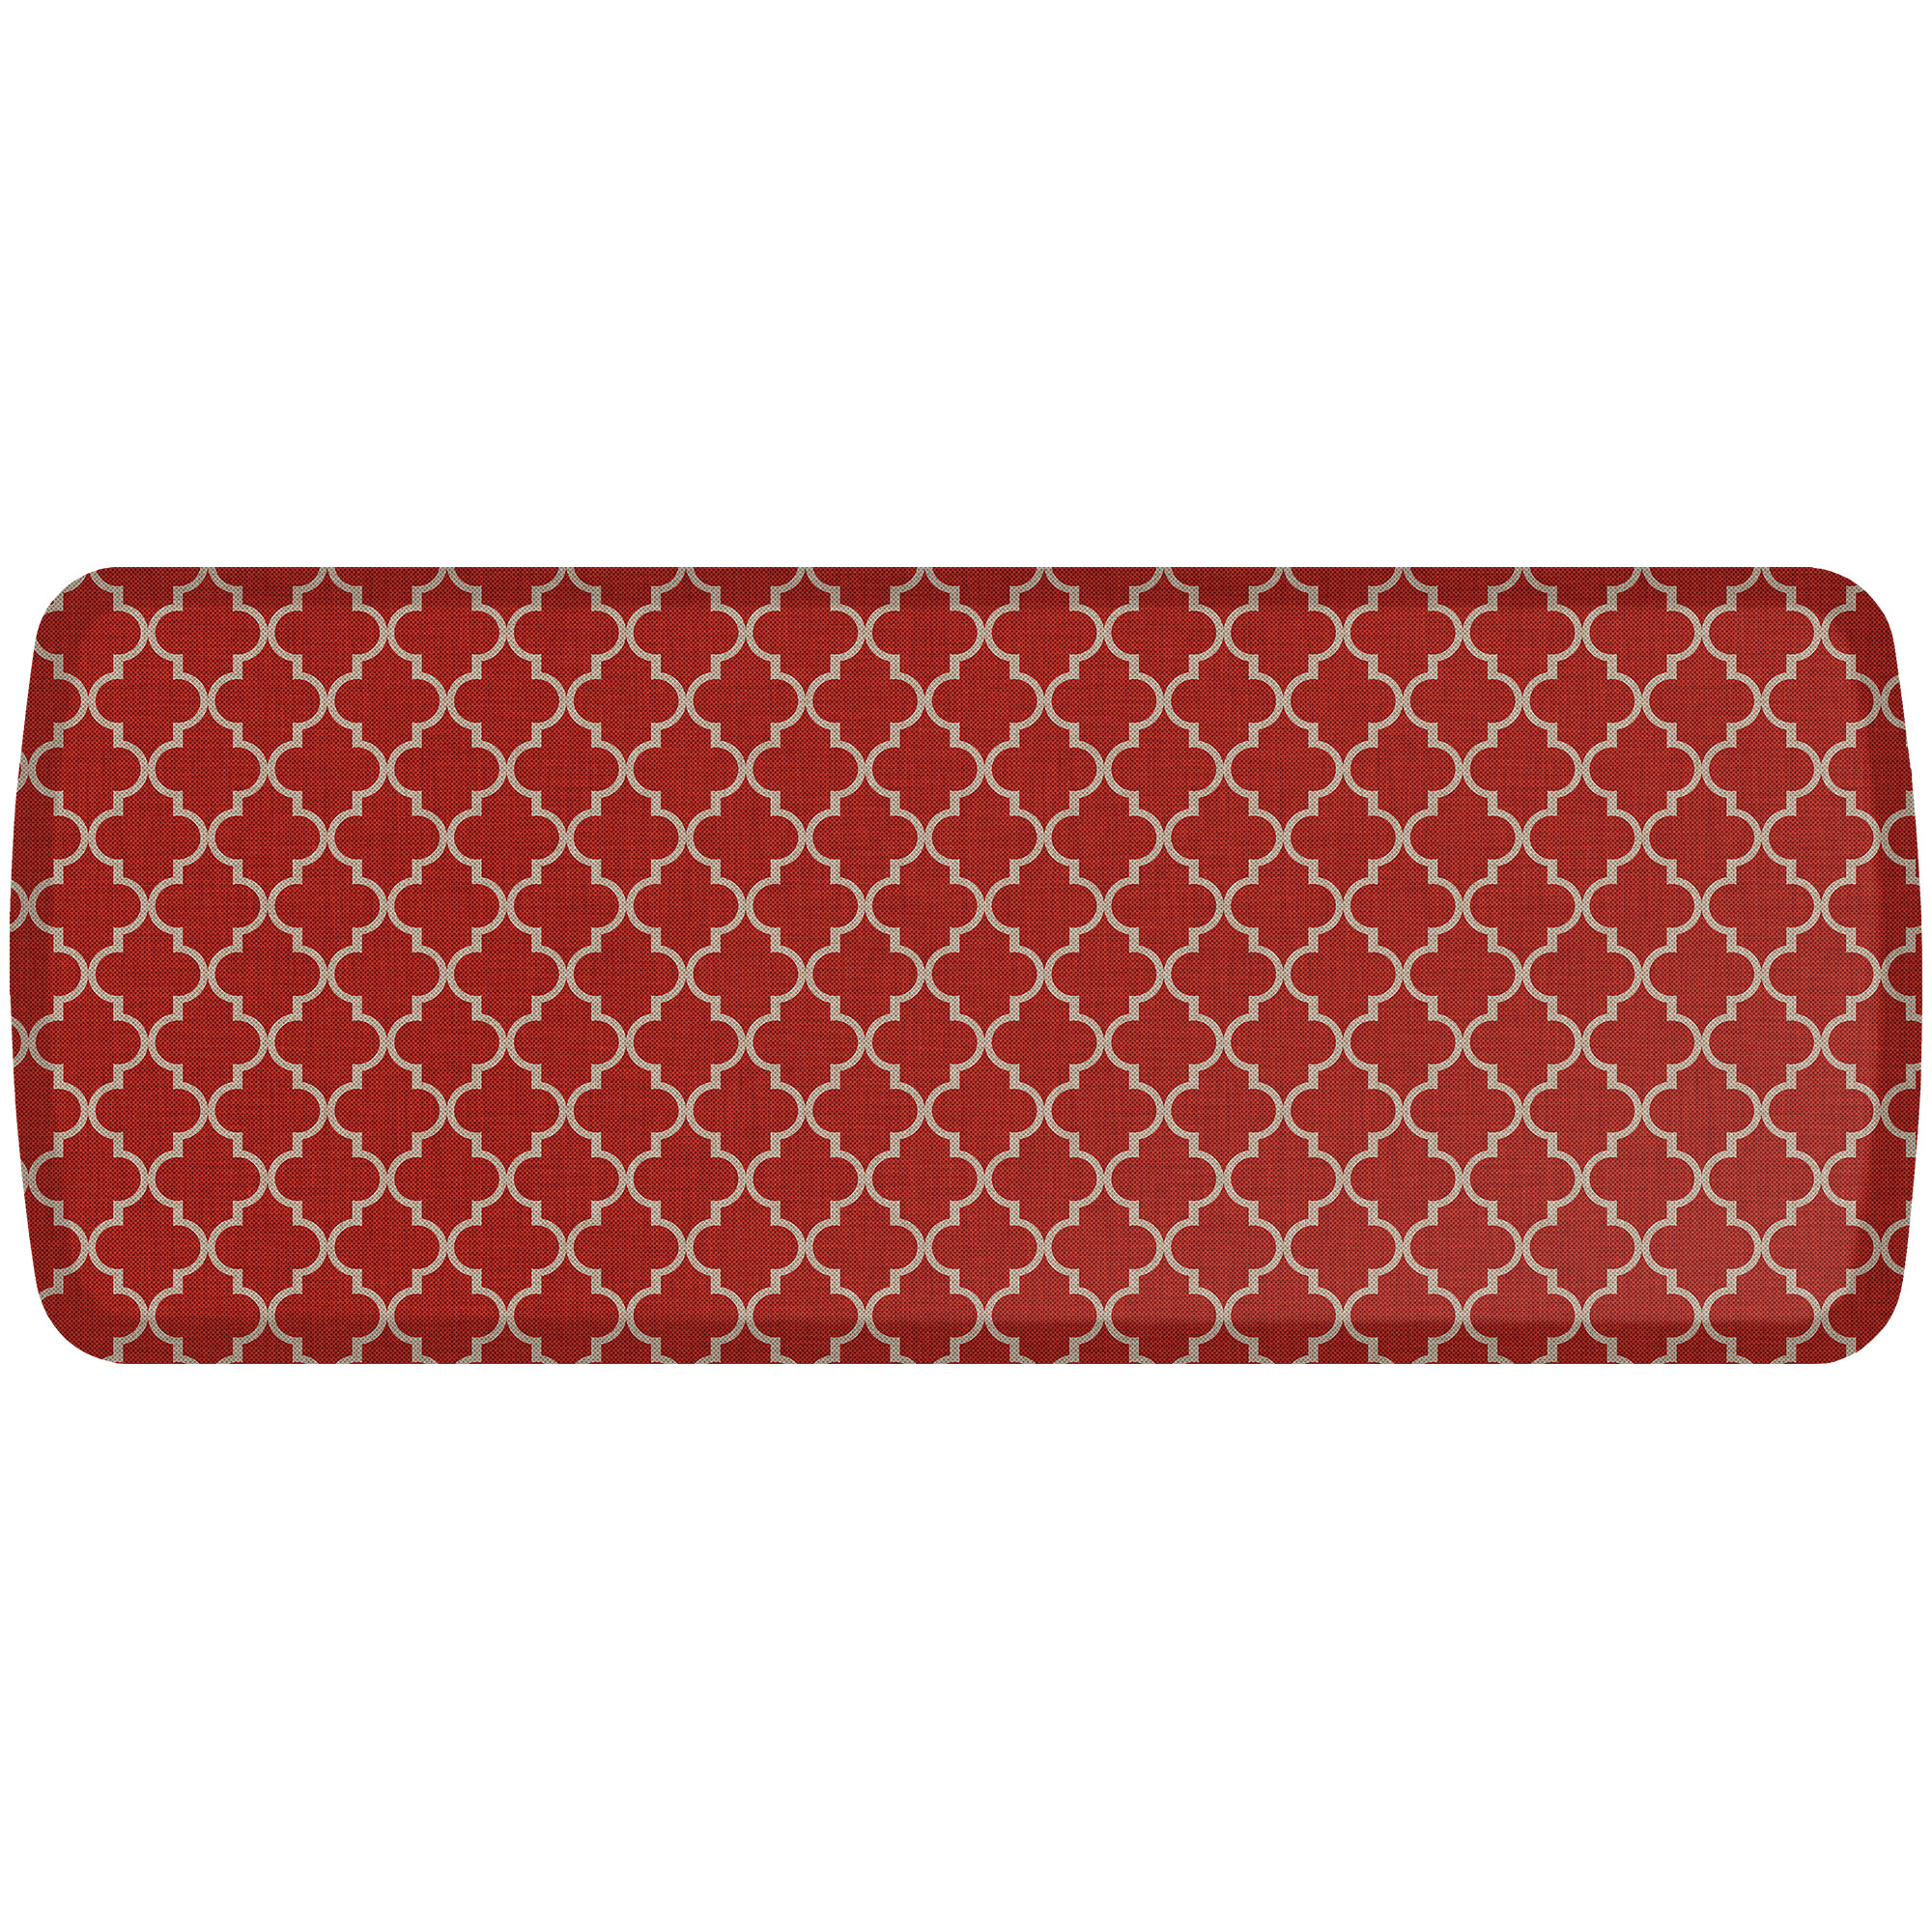 GelPro Elite Decorator Collection Anti-Fatigue Kitchen Floor Mat- Lattice-20x48-Cherry Tomato